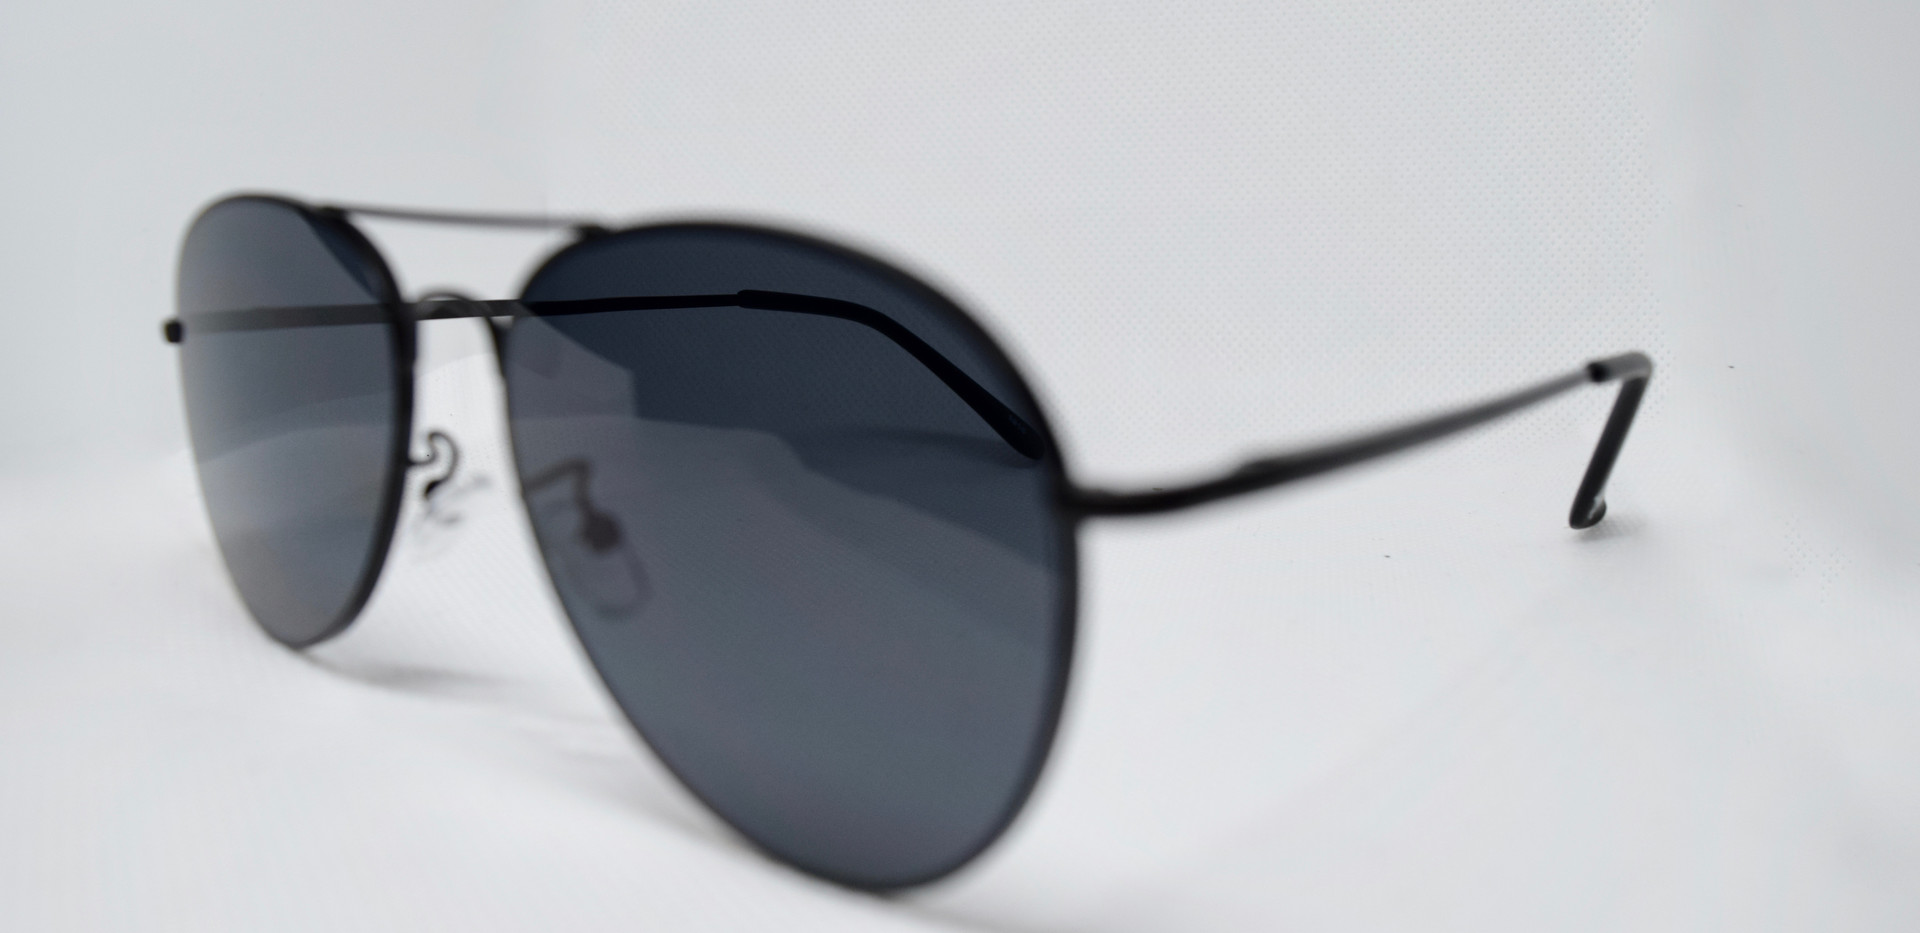 OneRule Matt Black Aviator